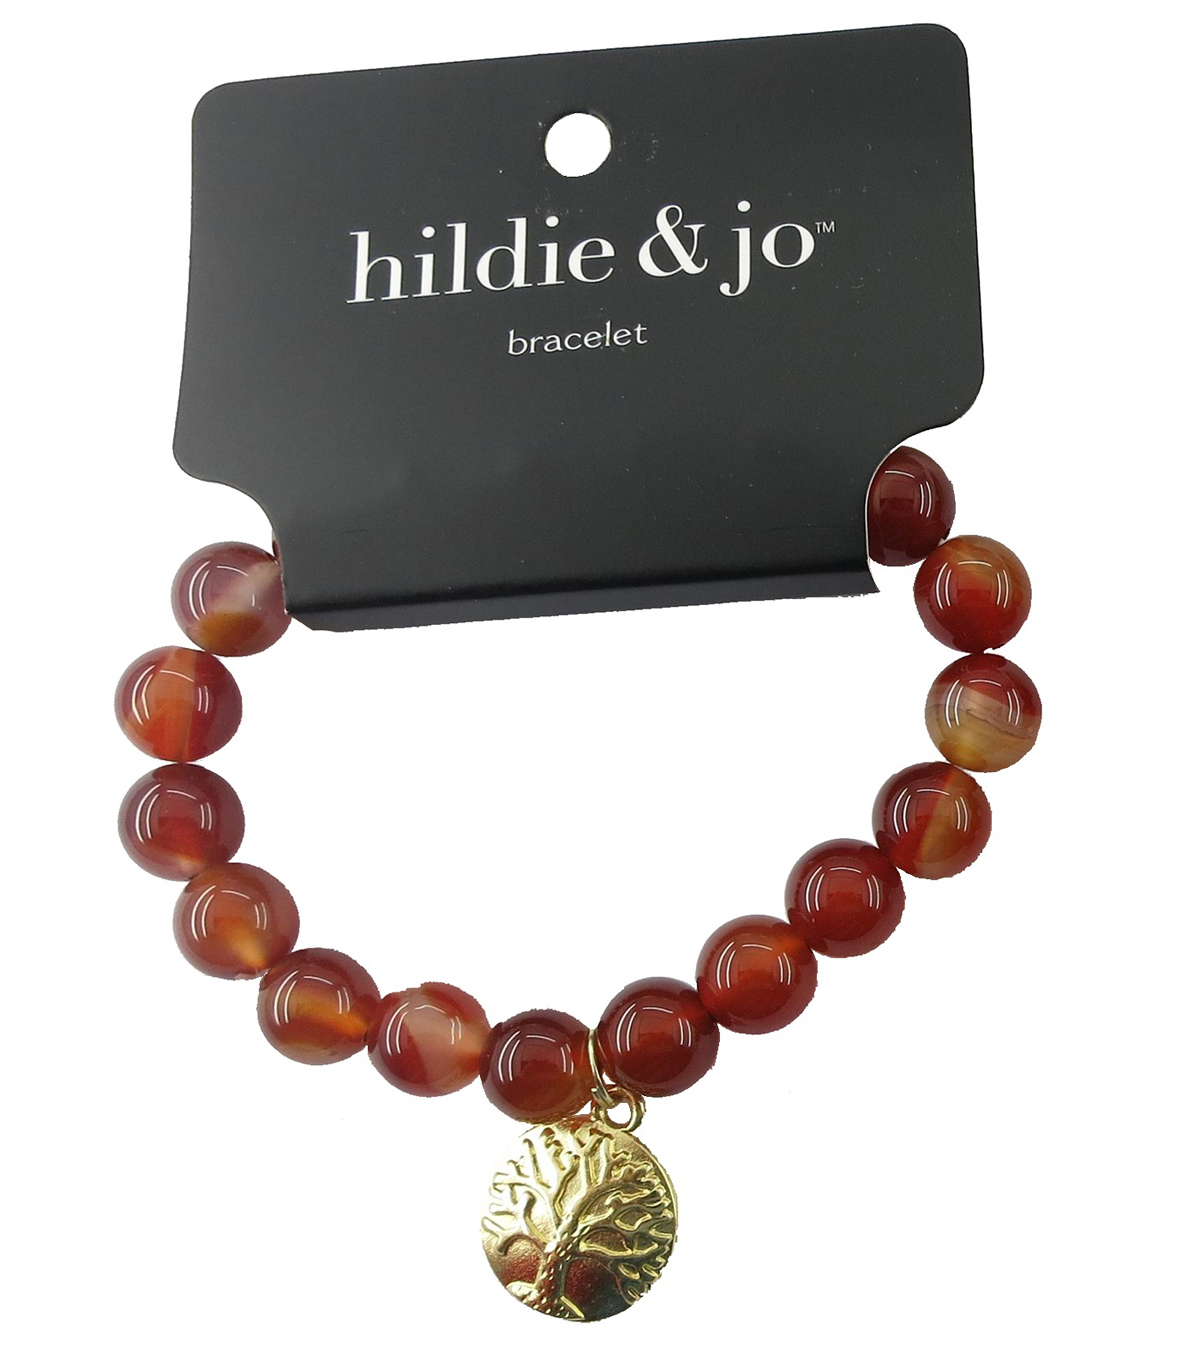 hildie & jo Beads Stretch Bracelet-Red with Tree of Life Charm